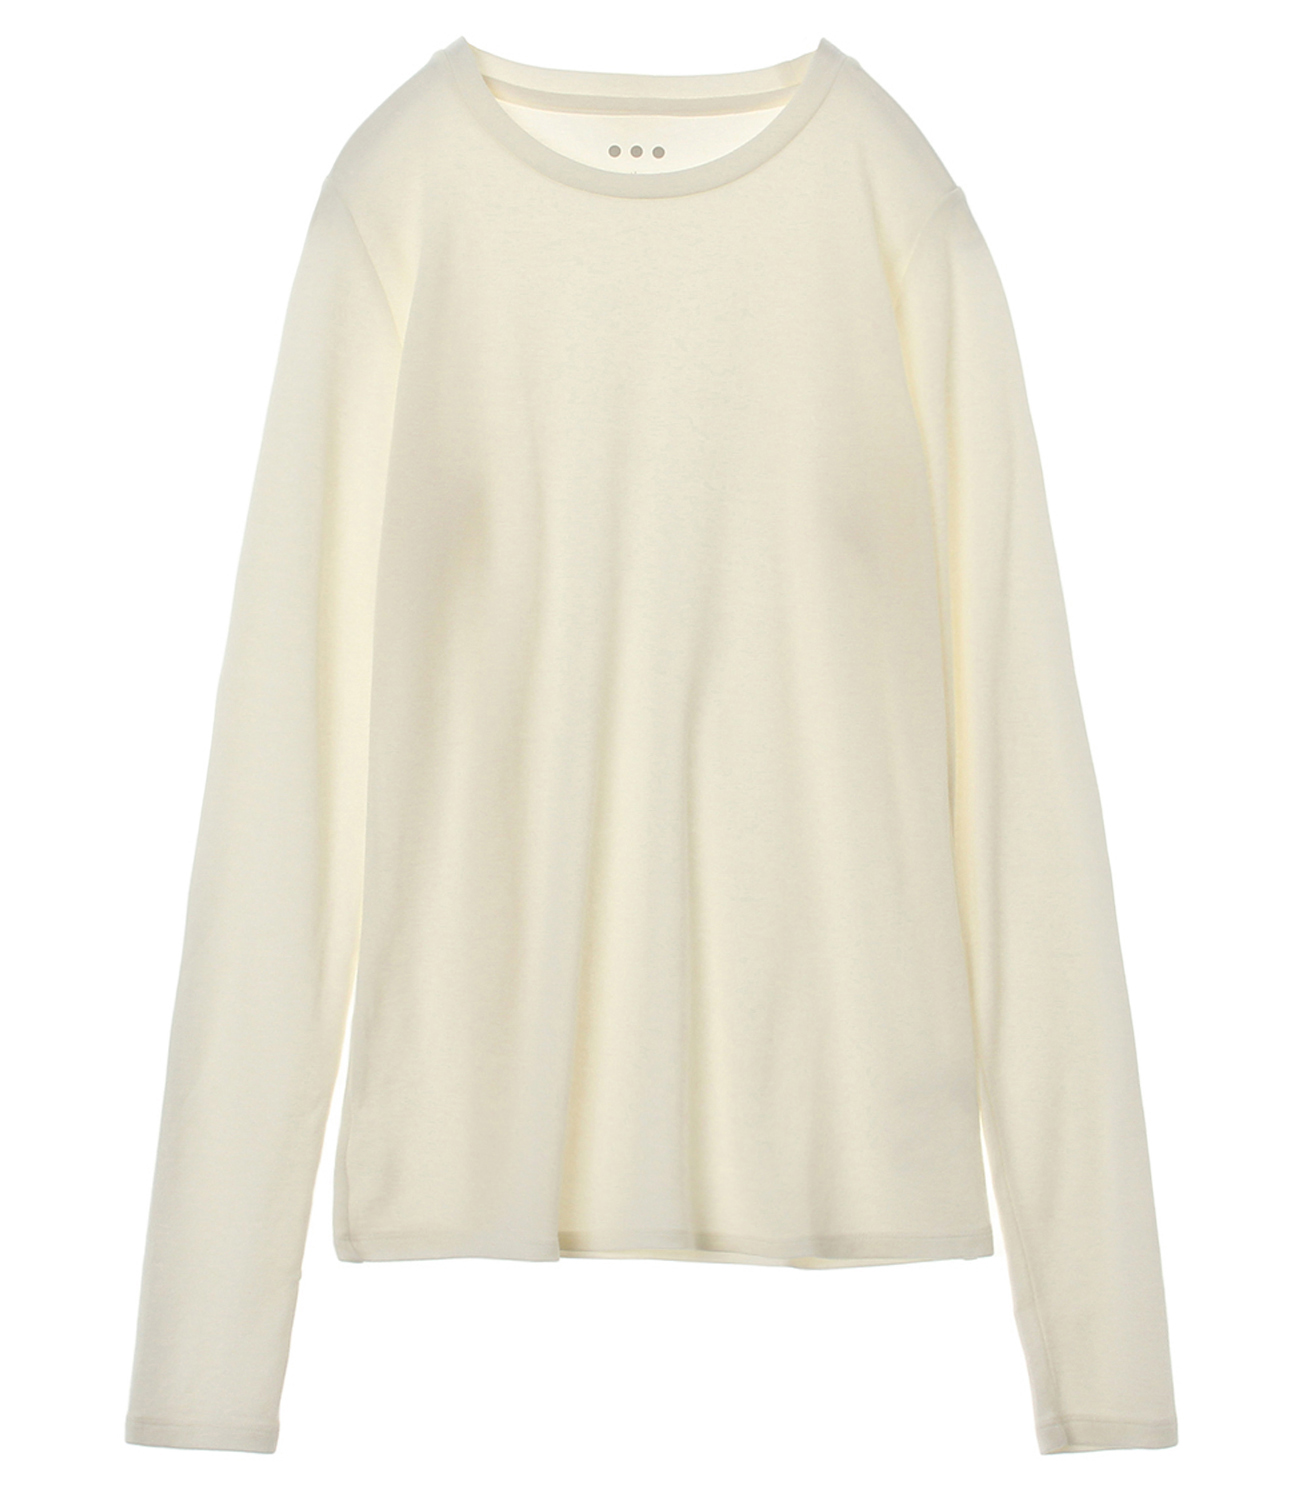 Sustainable jersey l/s crew top 詳細画像 white 1